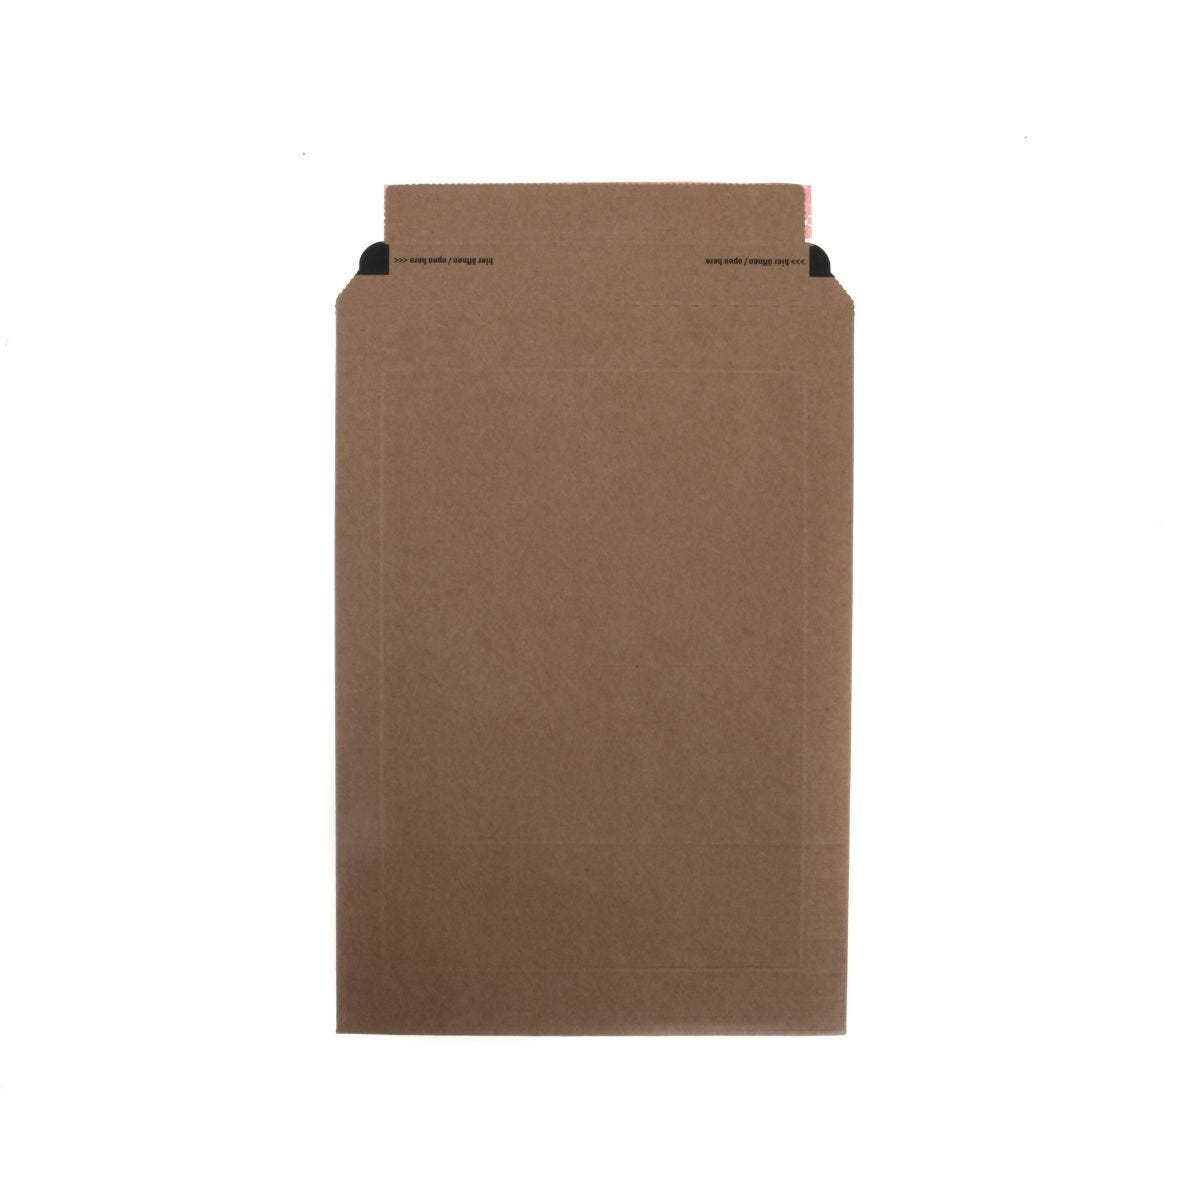 ColomPac All Board Envelope 340x210mm